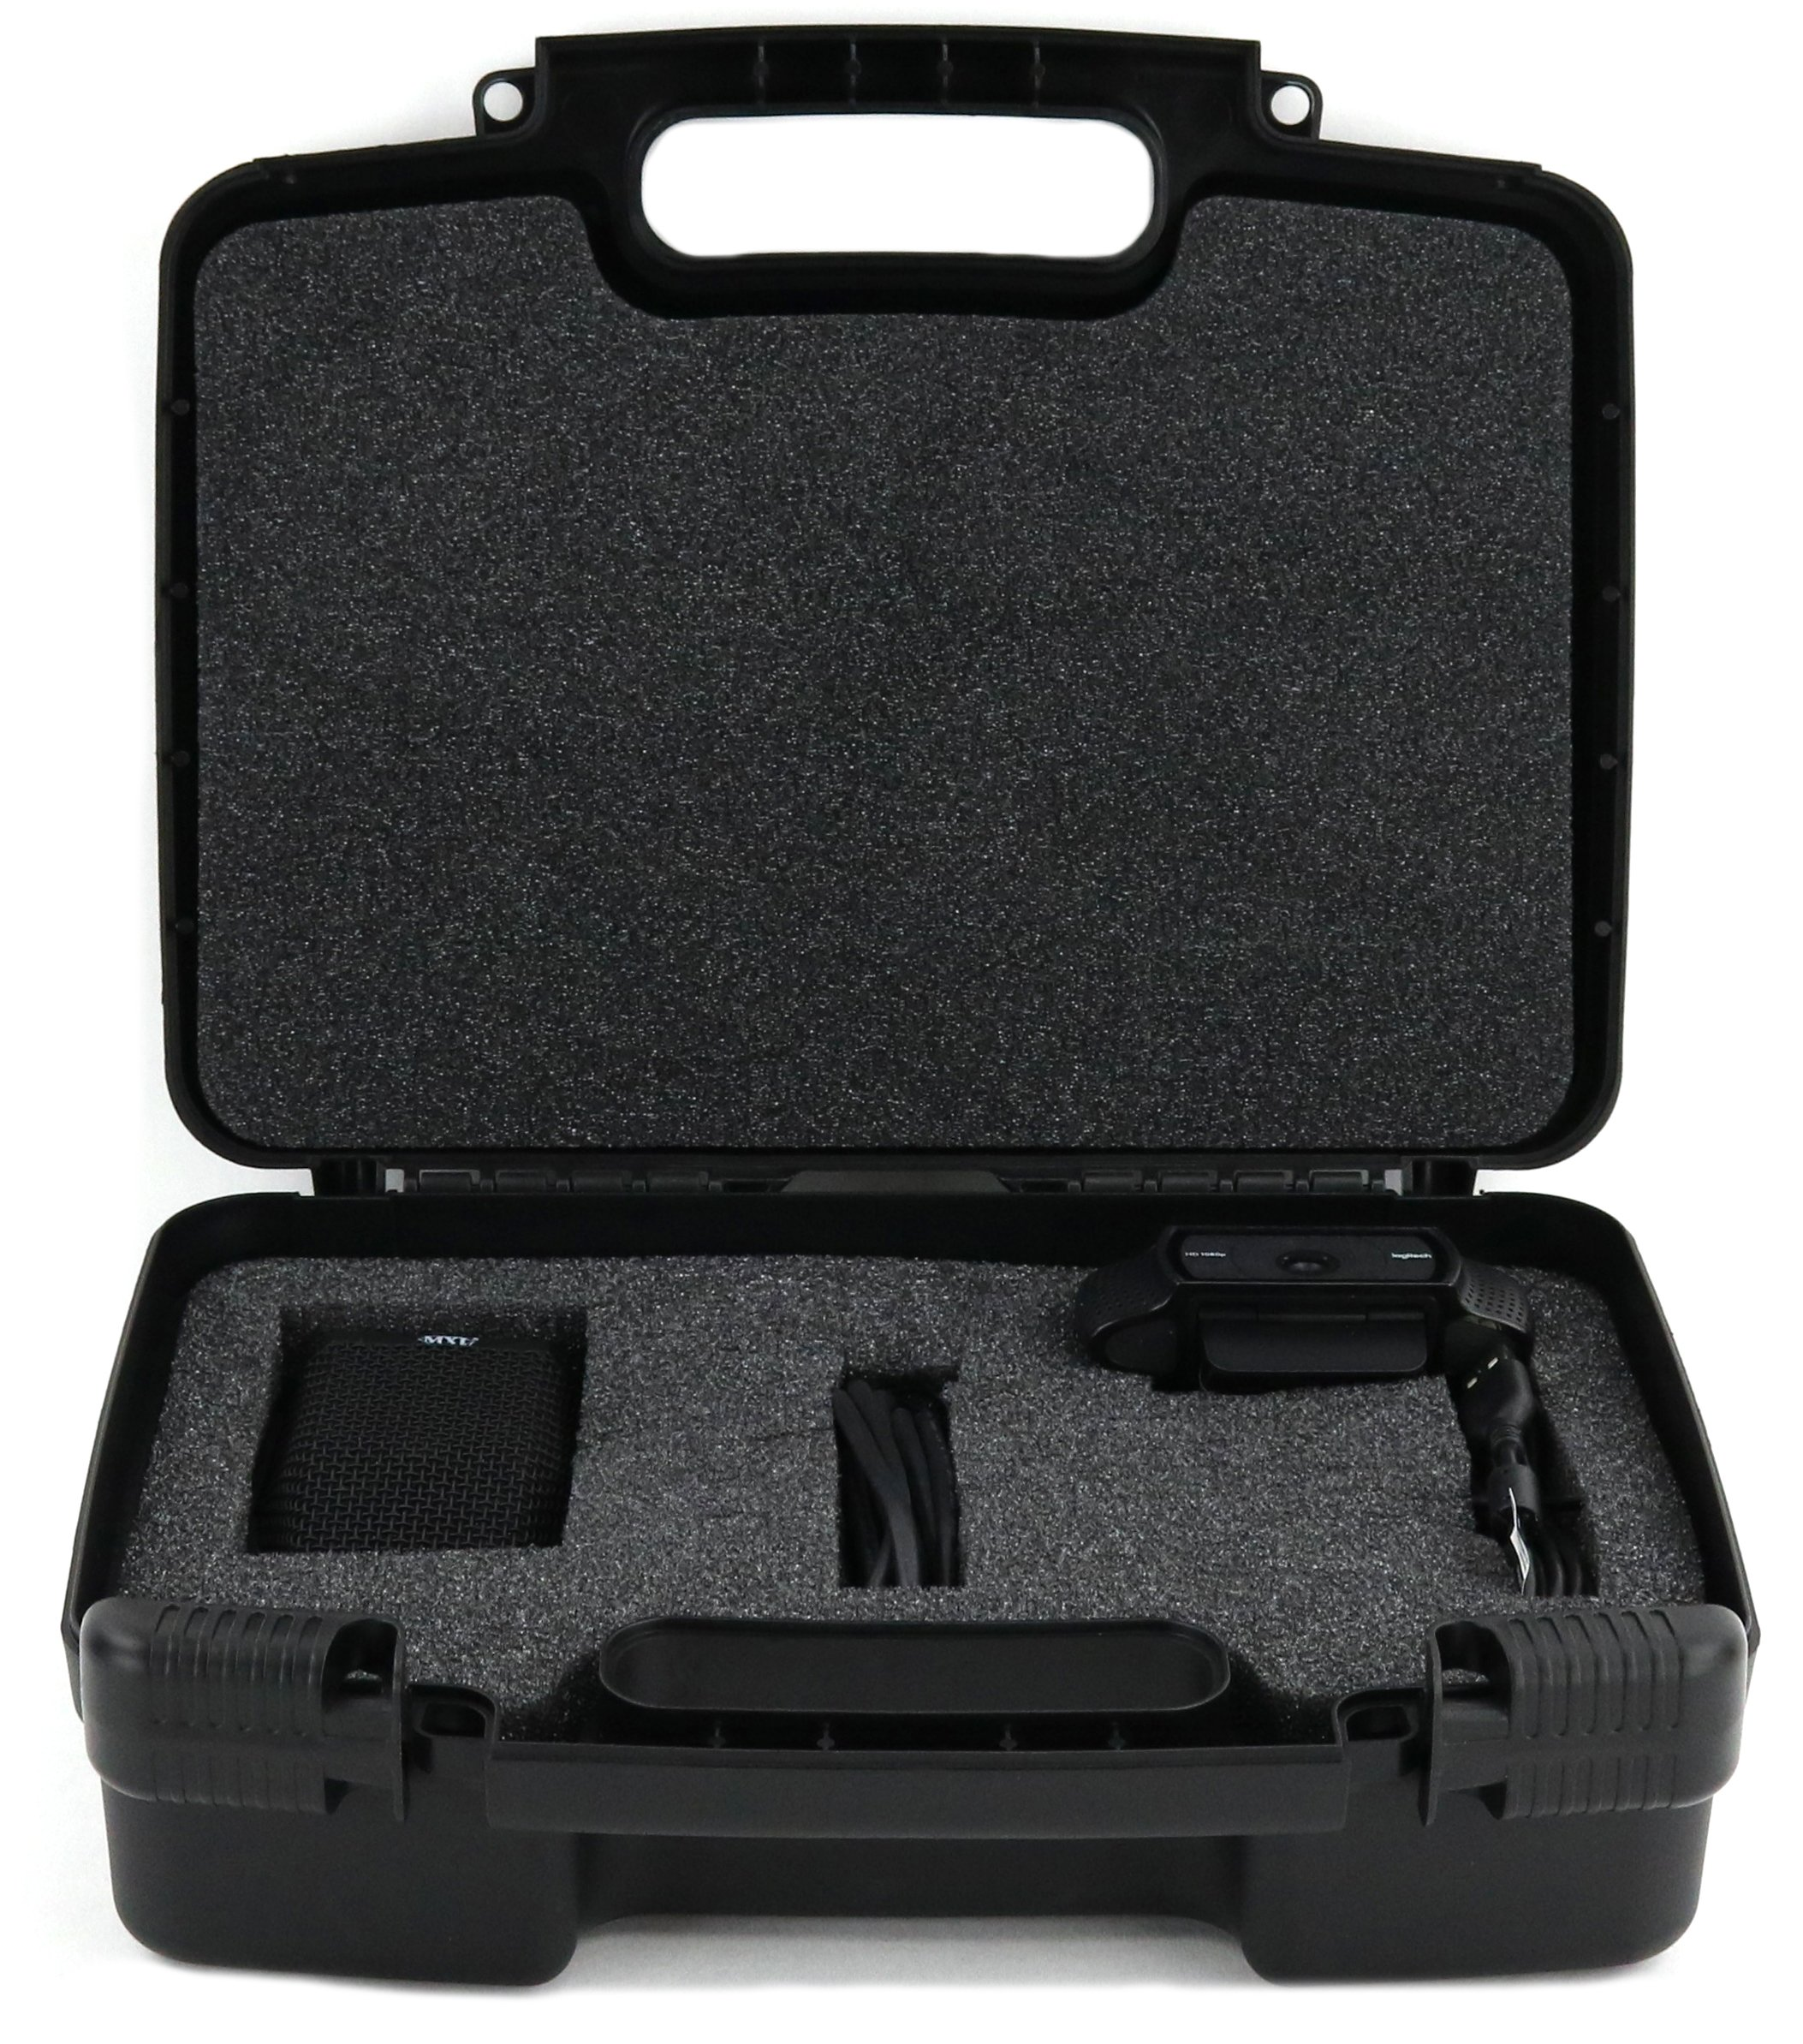 Life Made Better Storage Organizer - Compatible with Logitech HD Pro Webcam C920, C310, C922x, C270, C930e, C615, C525 and Accessories- Durable Carrying Case - Black